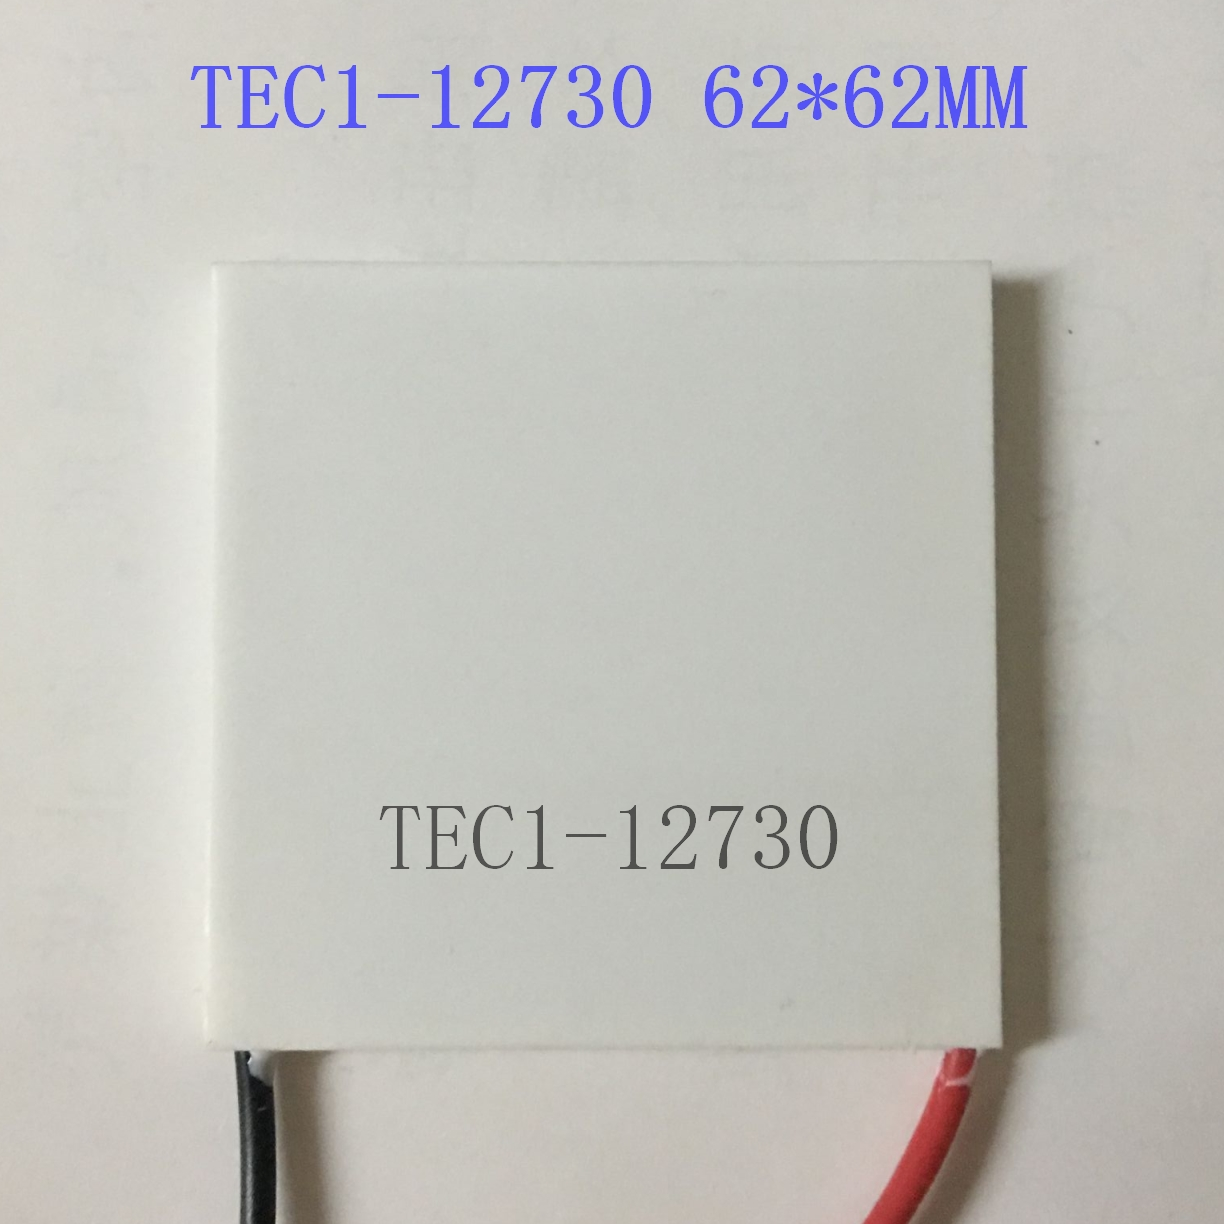 TEC1-12730 62*62mm new high power large granular semiconductor refrigeration chip large refrigeration equipment exclusive high power semiconductor refrigeration piece electronic refrigeration chip tec1 12730 360w